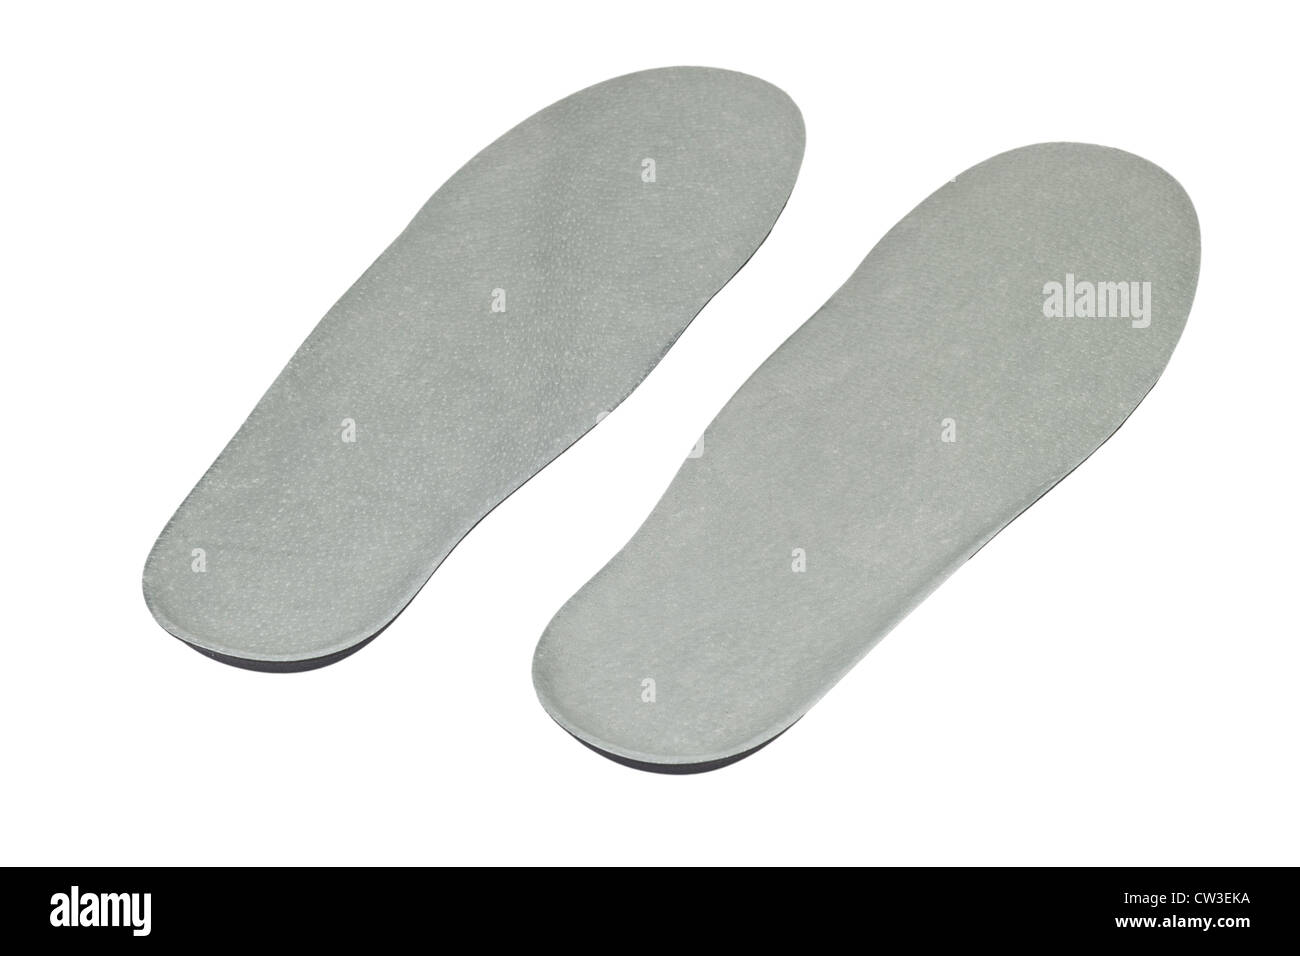 Magnetic shoe insoles - Stock Image